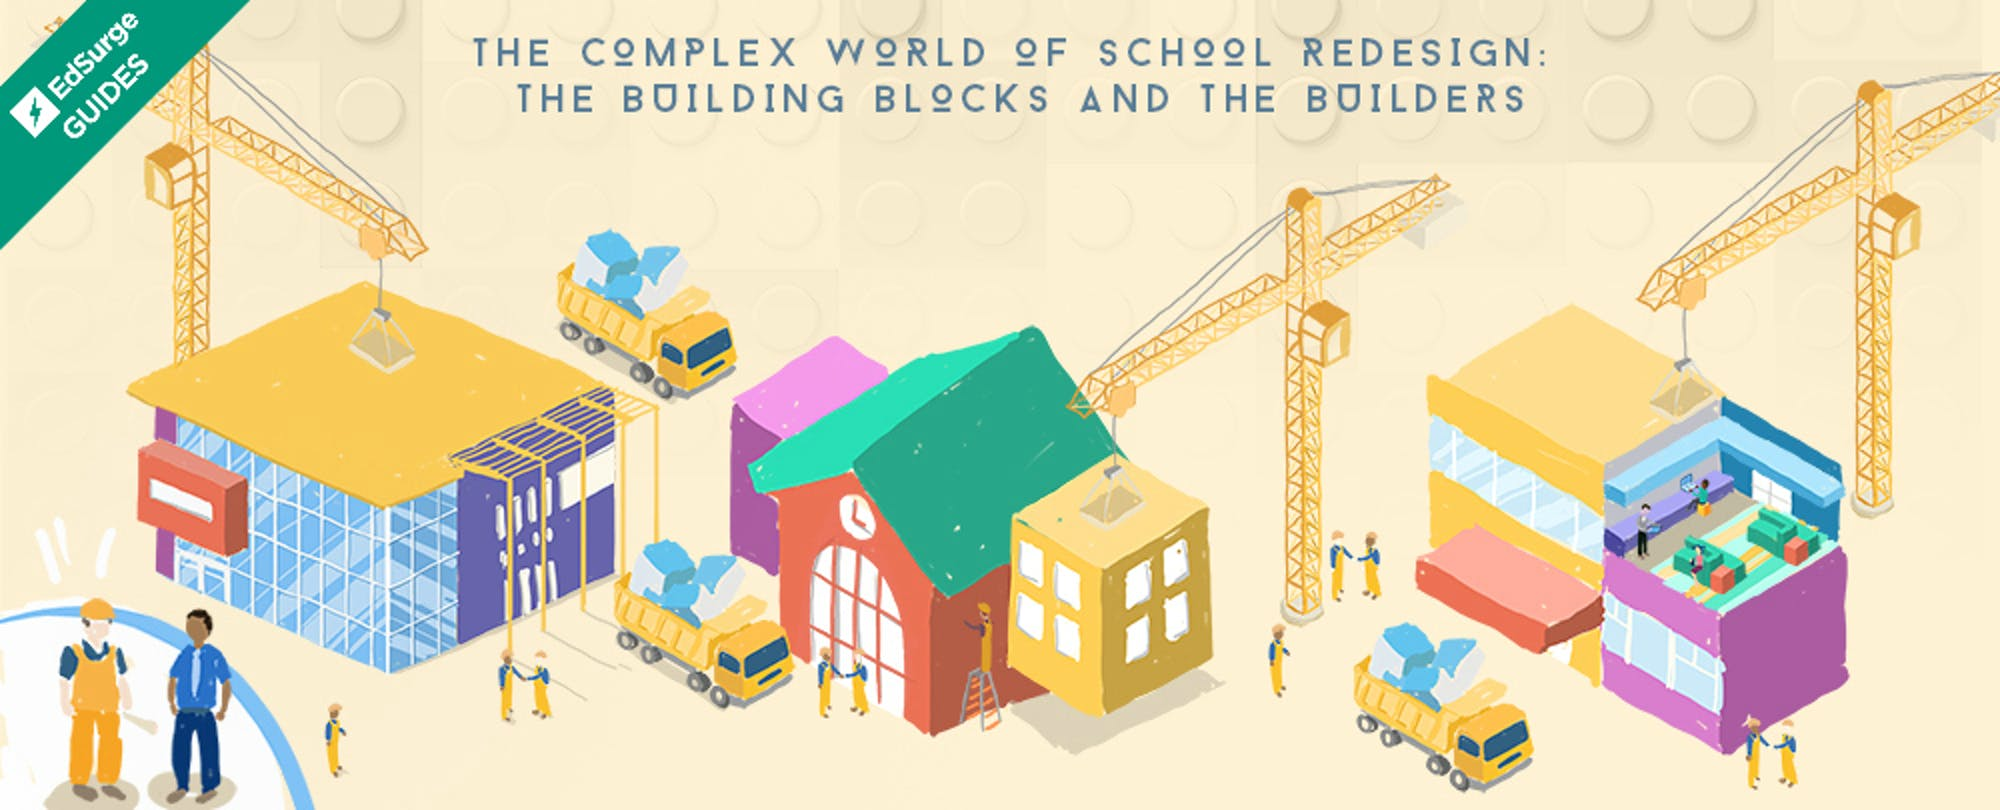 The Complex World of School Redesign: The Building Blocks and the Builders